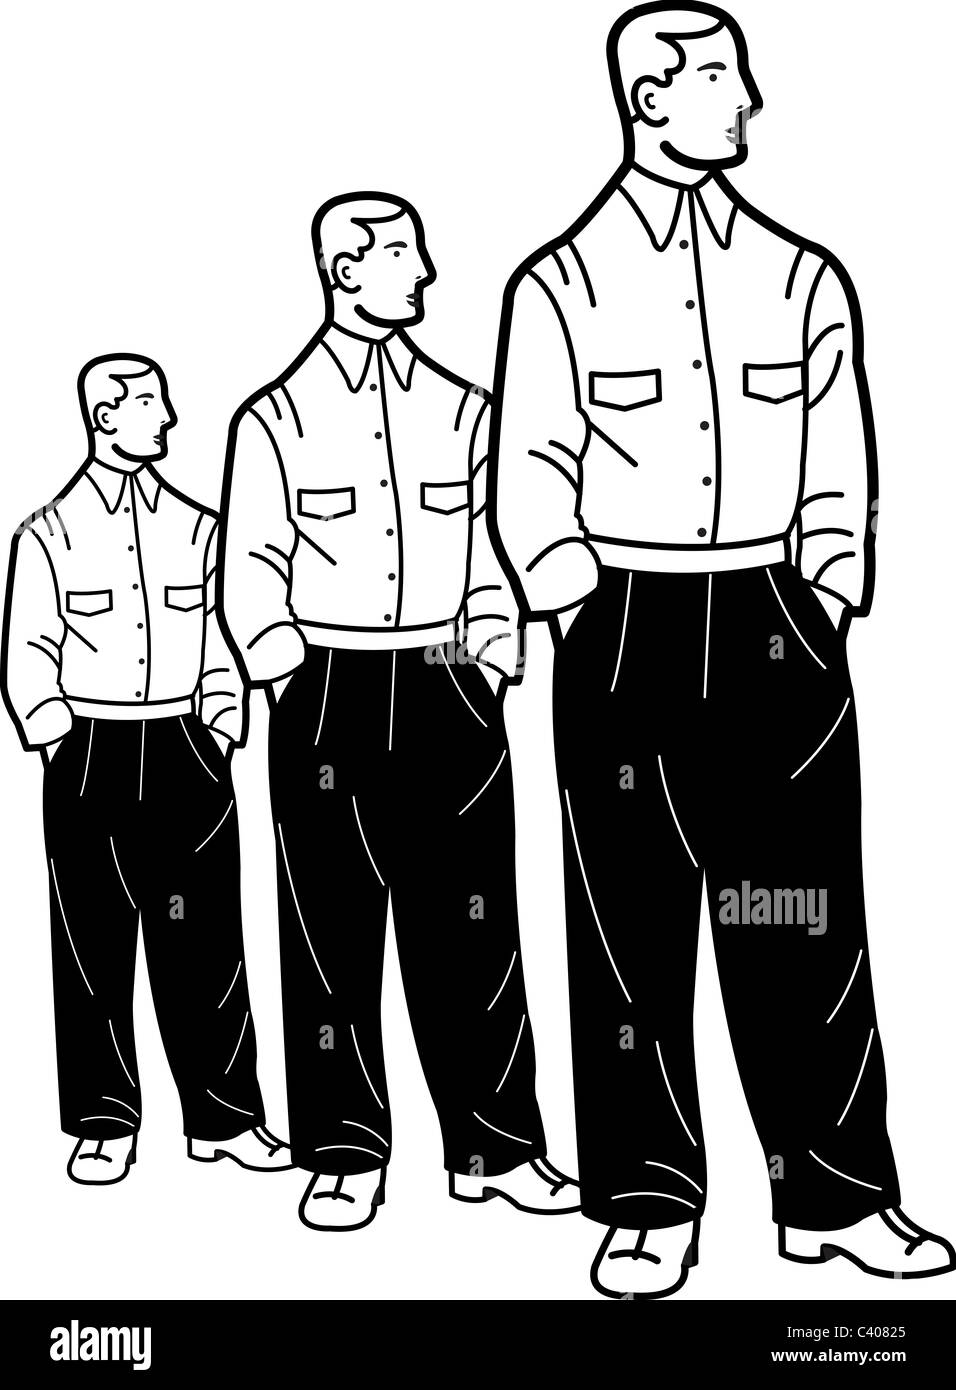 Illustration of three identical men standing with their hands in their pockets - Stock Image